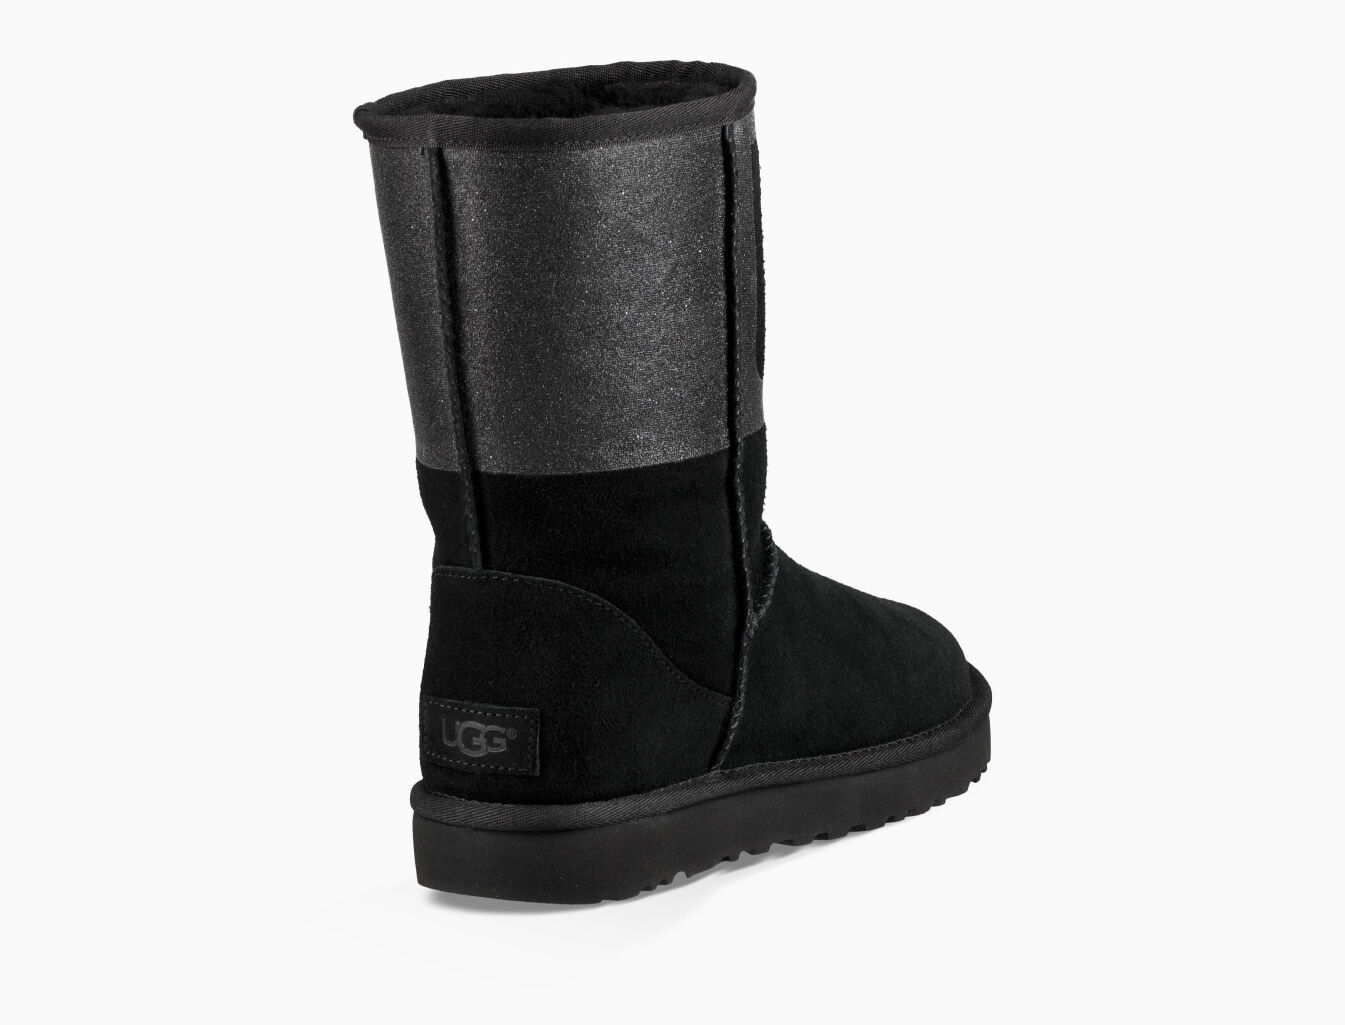 Zoom Classic Short UGG Sparkle Boot - Image 4 of 6